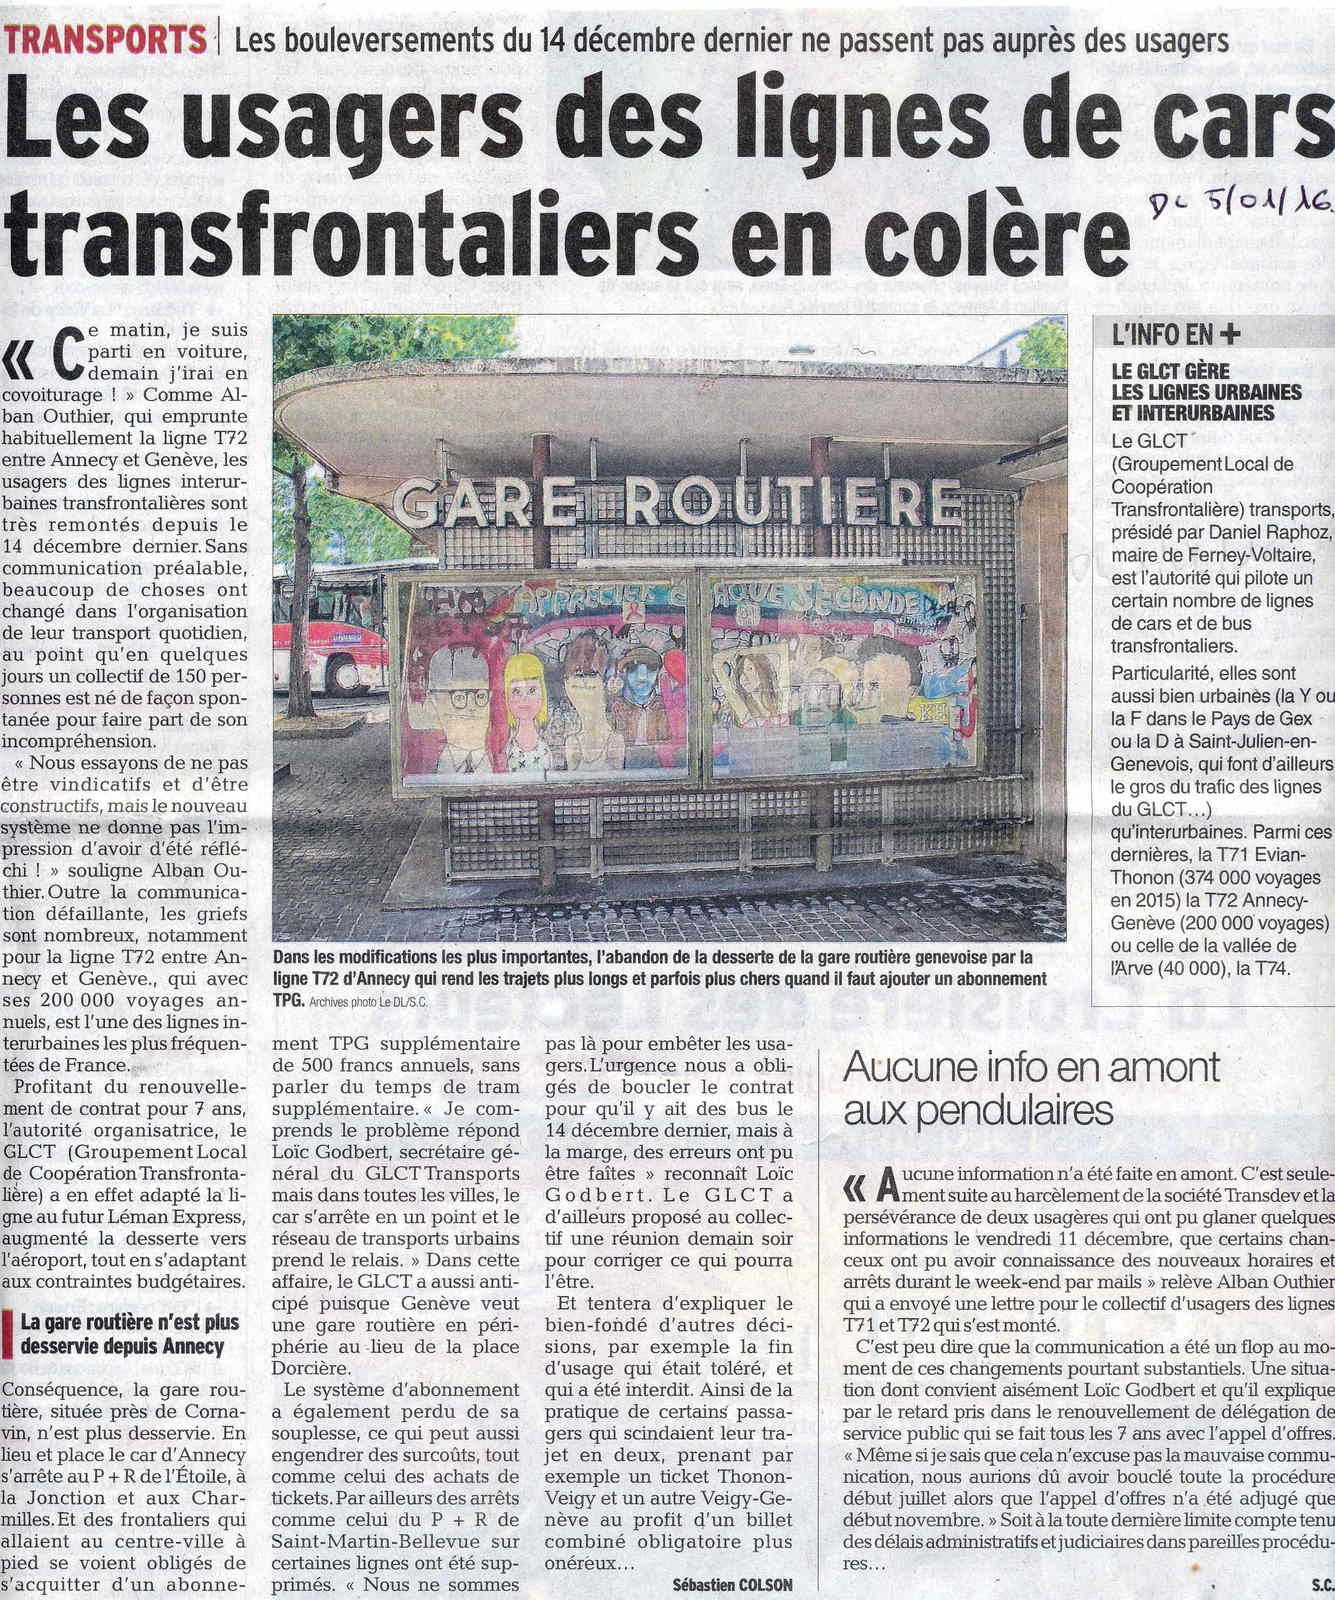 Transports collectifs transfrontaliers (TCT) les usagers en colère